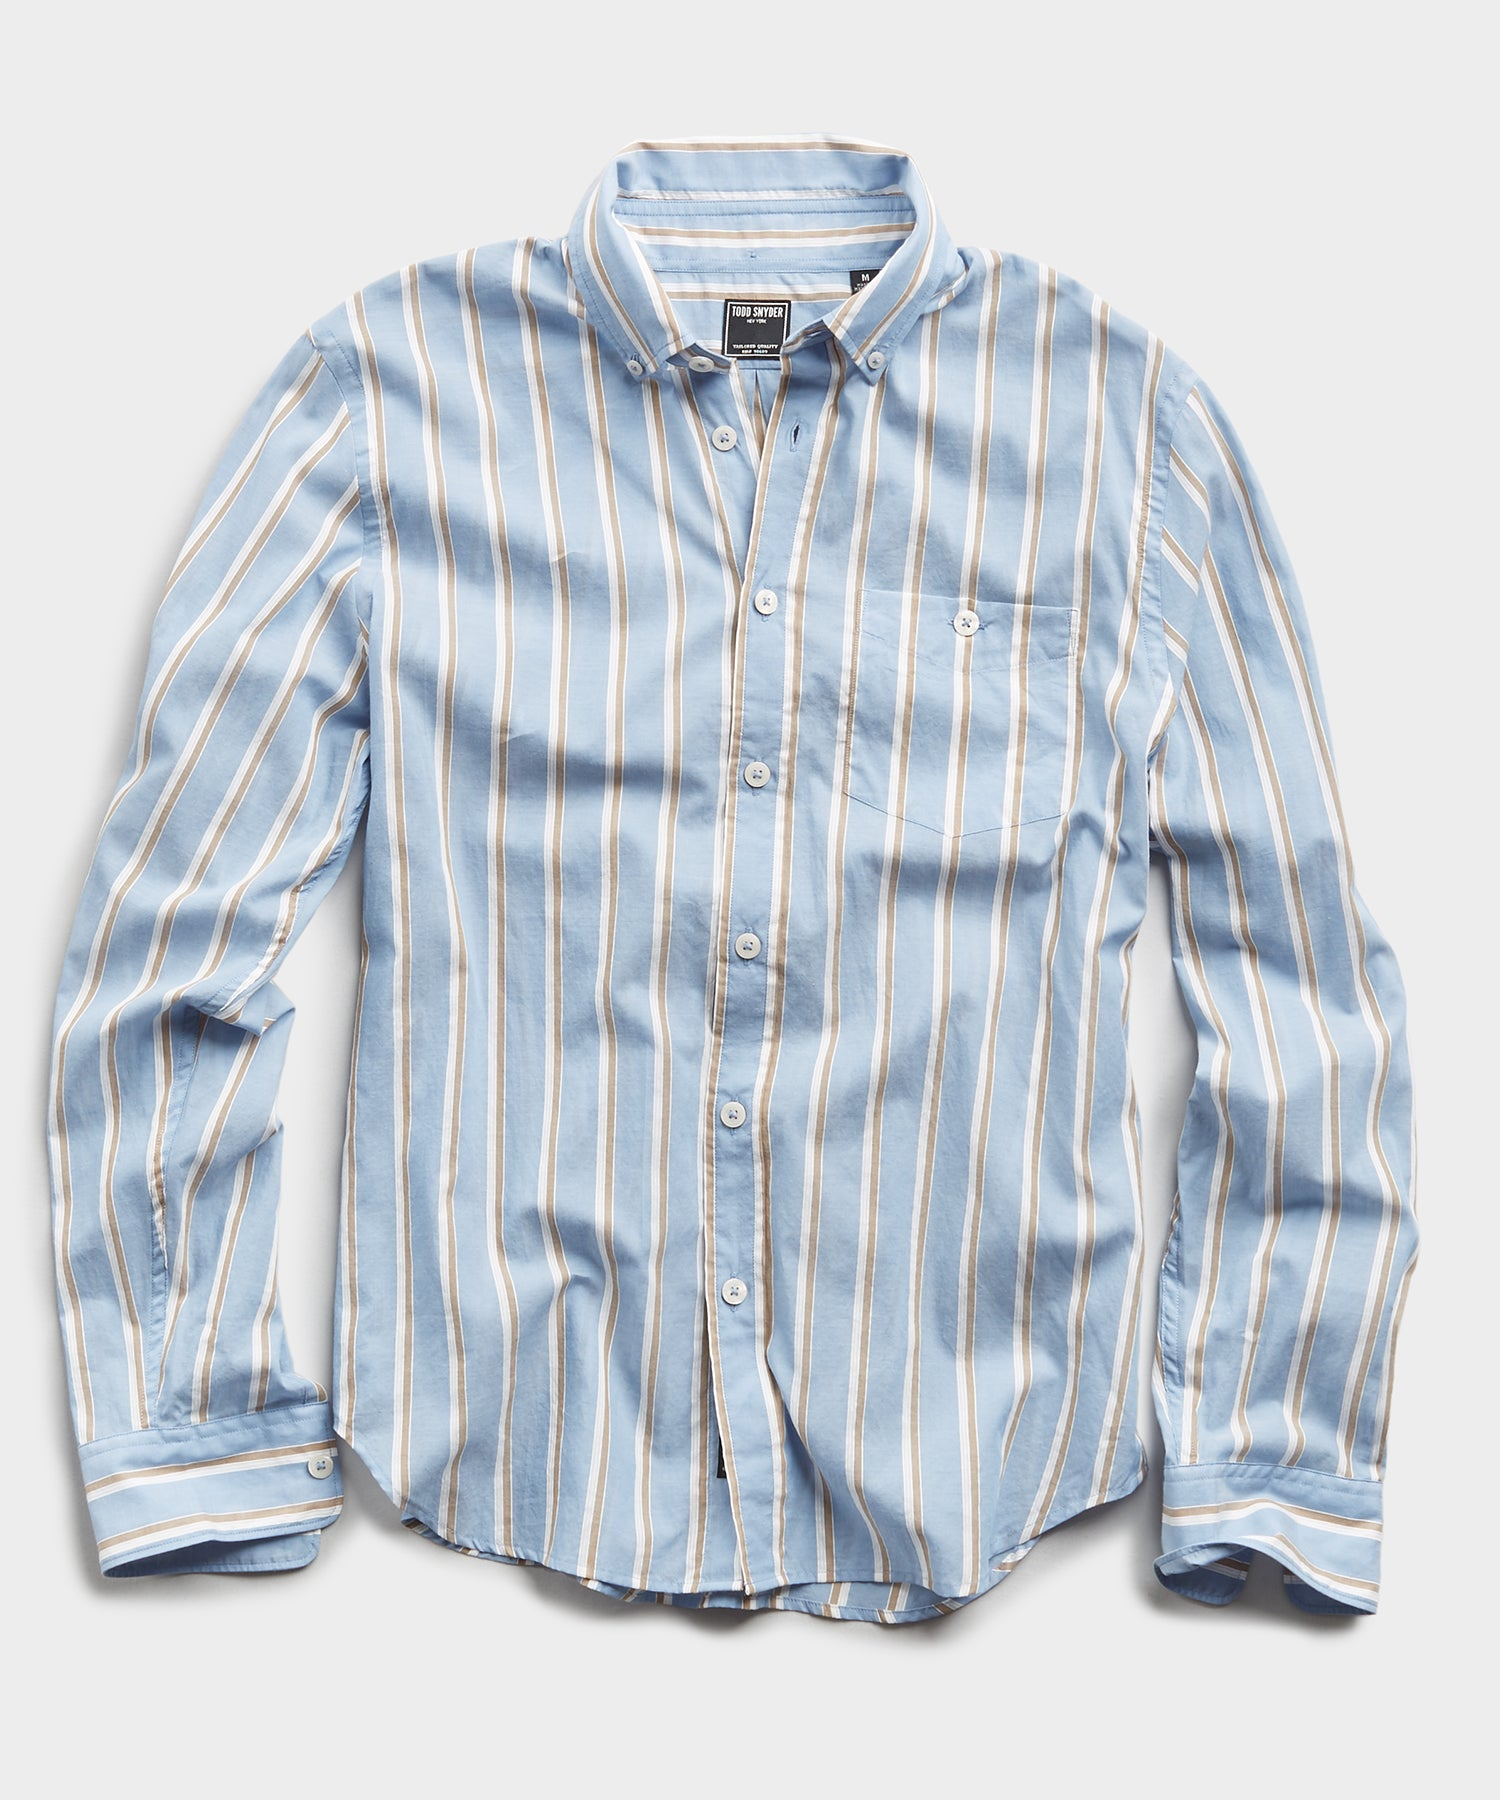 Blue Stripe Button Down Collar Long Sleeve Shirt